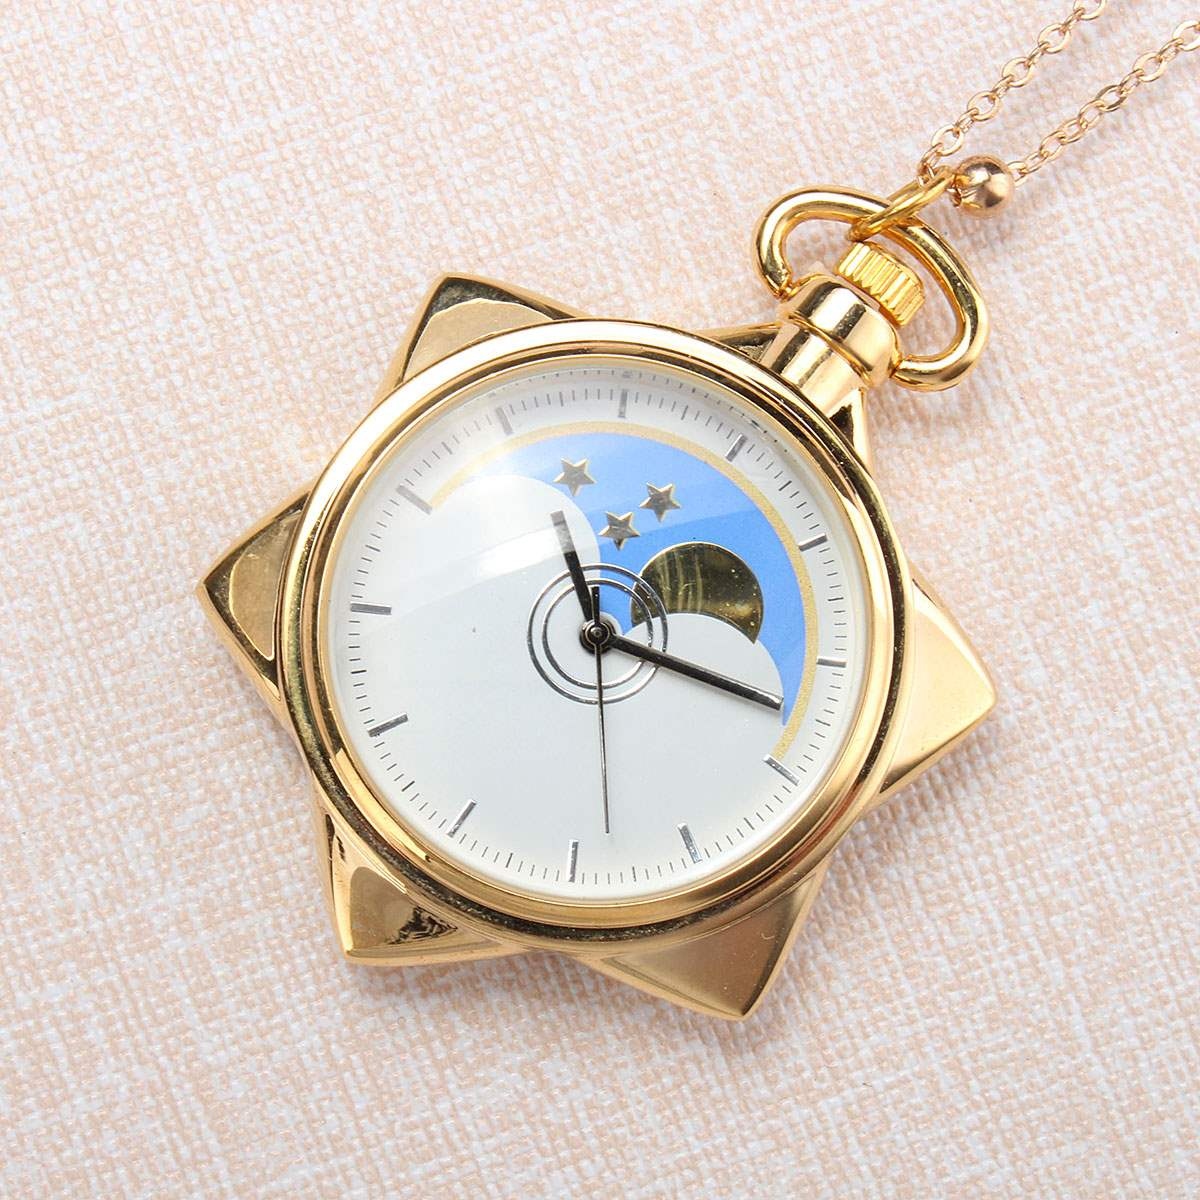 New Sailor Moon Anniversary Crystal Star Bolsillo Watch Necklace Pendant Chain Tuxedo Fans Cosplay Anime Accessories With Box sosw fashion anime theme death note cosplay notebook new school large writing journal 20 5cm 14 5cm